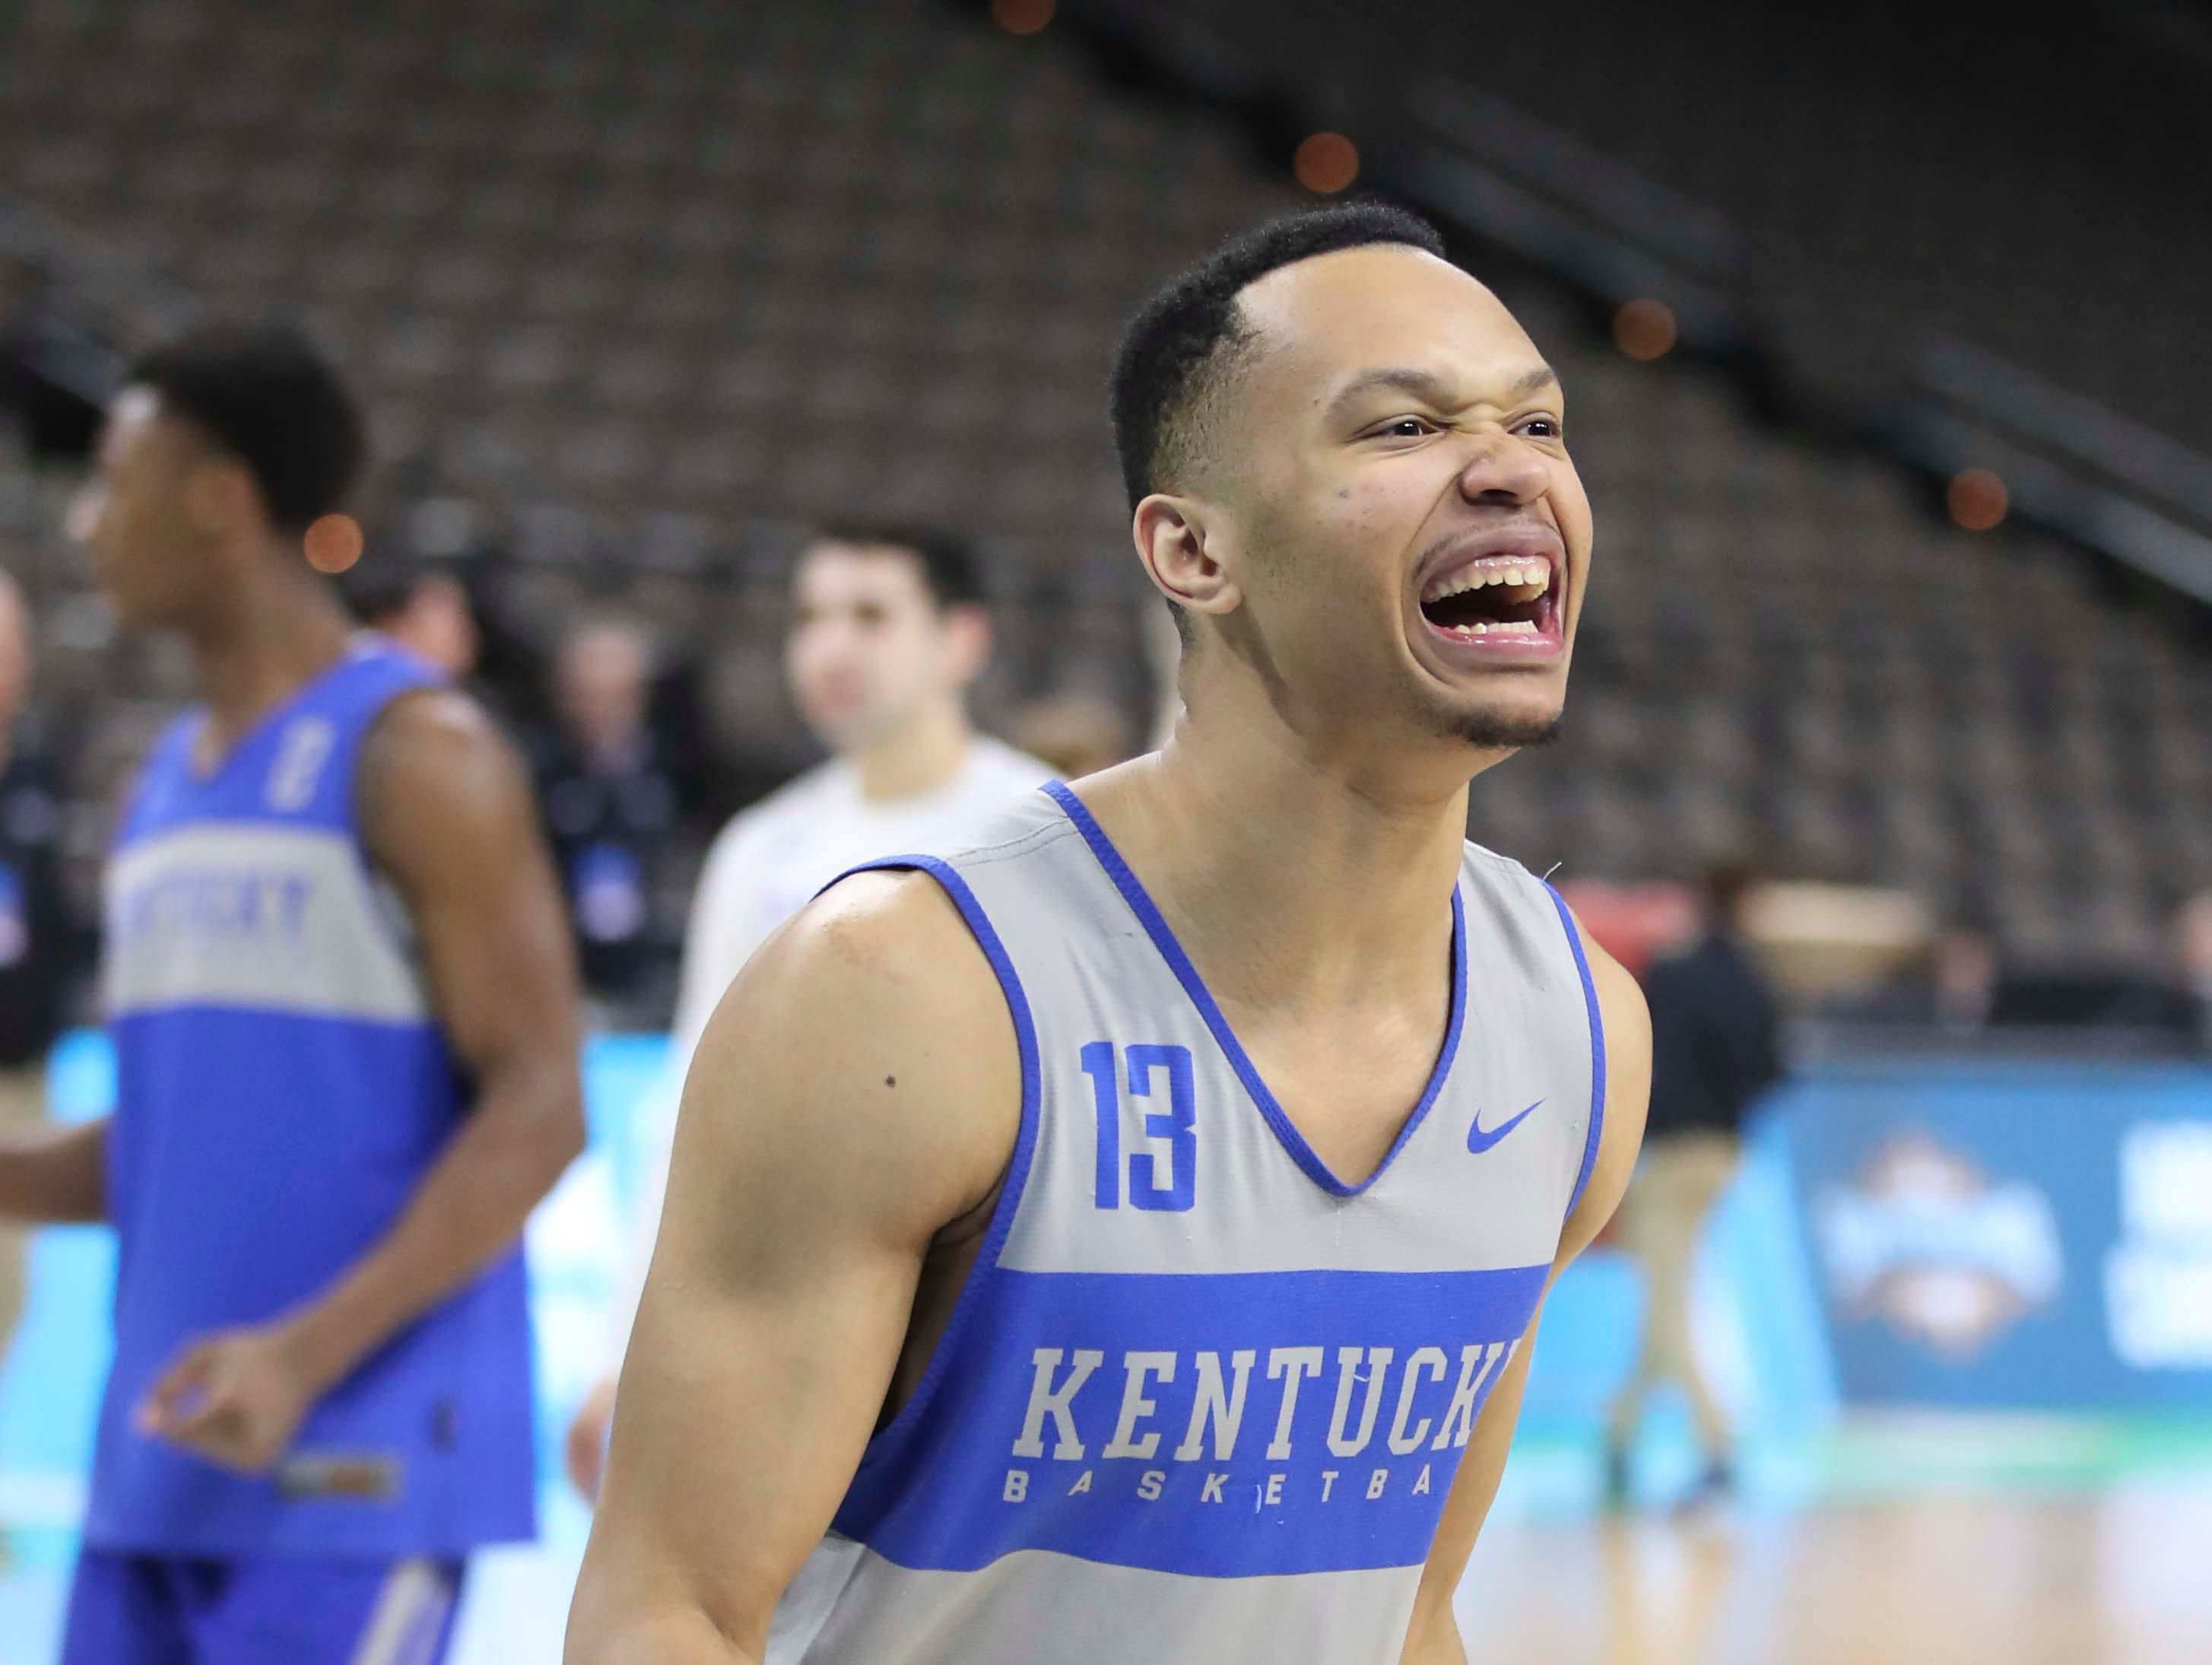 Kentucky's Jemarl Baker was excited during tourney practice Wednesday afternoon in Jacksonville. March 20, 2019